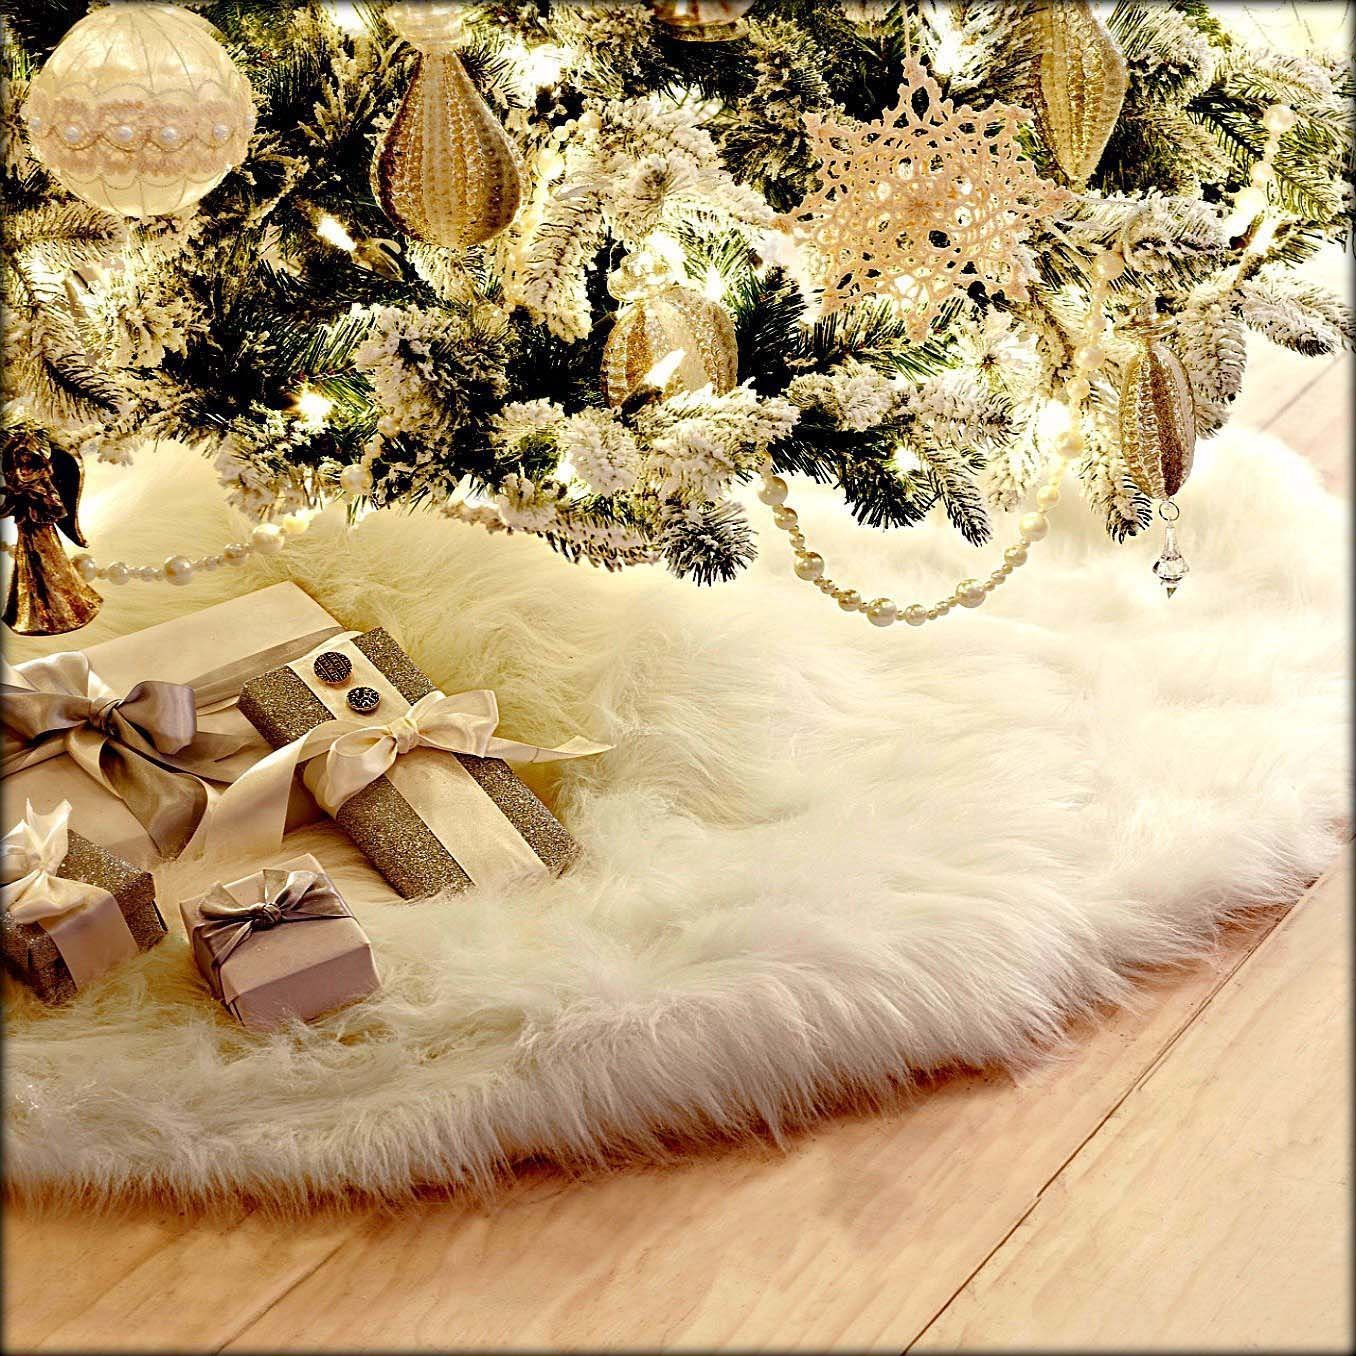 Guwheat 30.7 Inches Christmas Tree Skirts White Luxury Faux Fur Tree Ornaments Plush XmasTree Skirt for Christmas Decoration New Year Party (30.7 Inch Dia.)